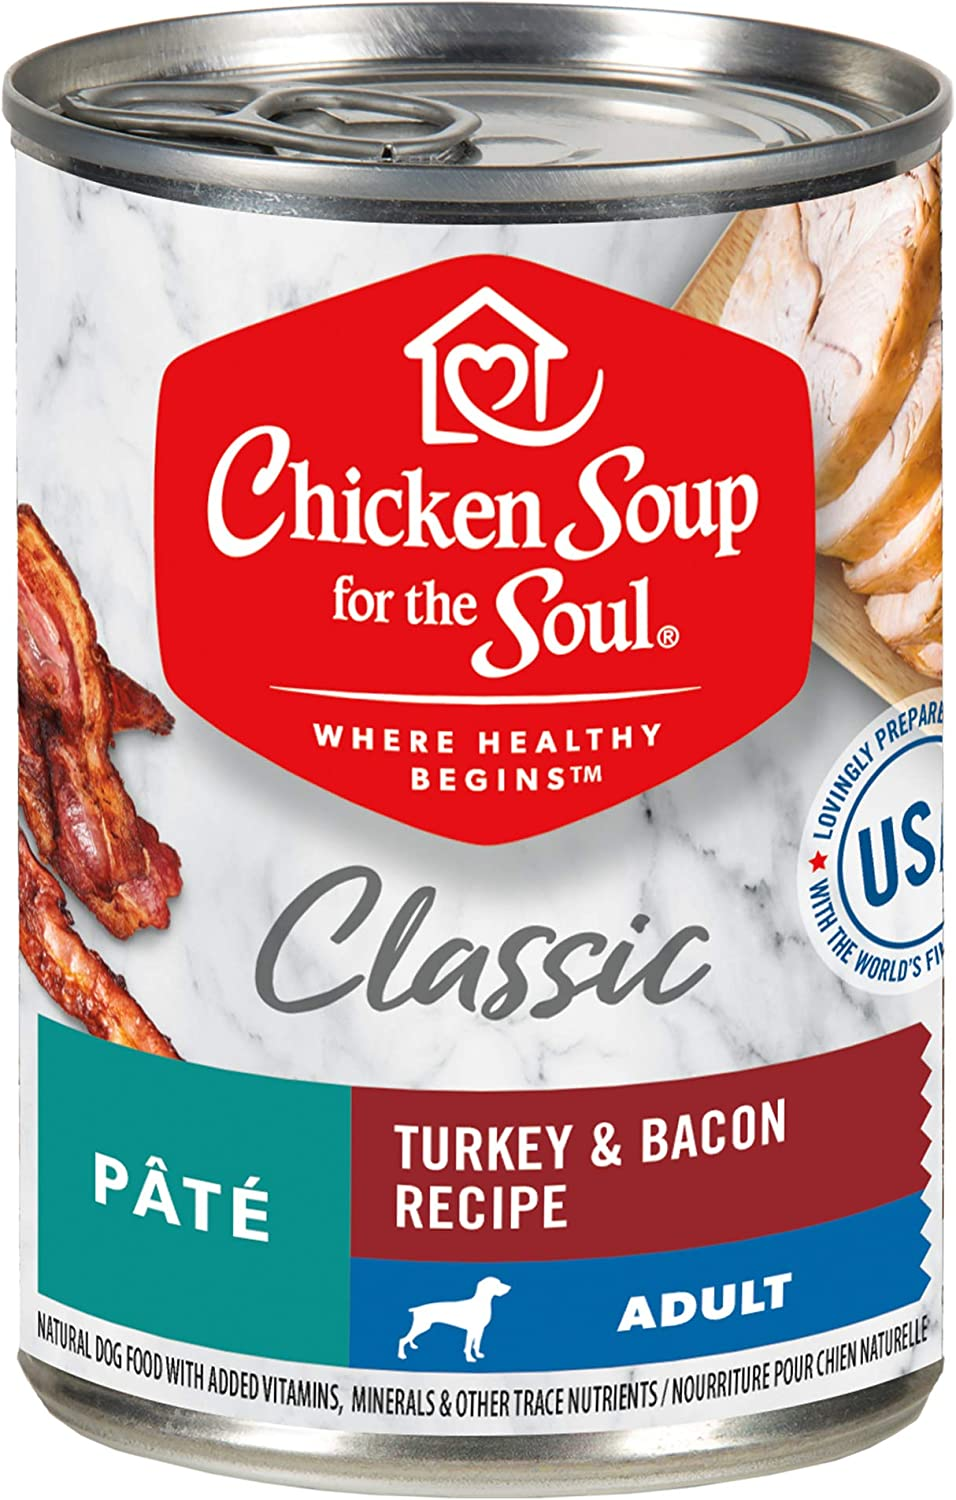 Chicken Soup for the Soul Pet Food - Classic Wet Dog Food - Turkey & Bacon Pate RecipeSoy Free, Corn Free, Wheat Free Dry Dog Food Made with Real Ingredients No Artificial Flavors or Preservatives